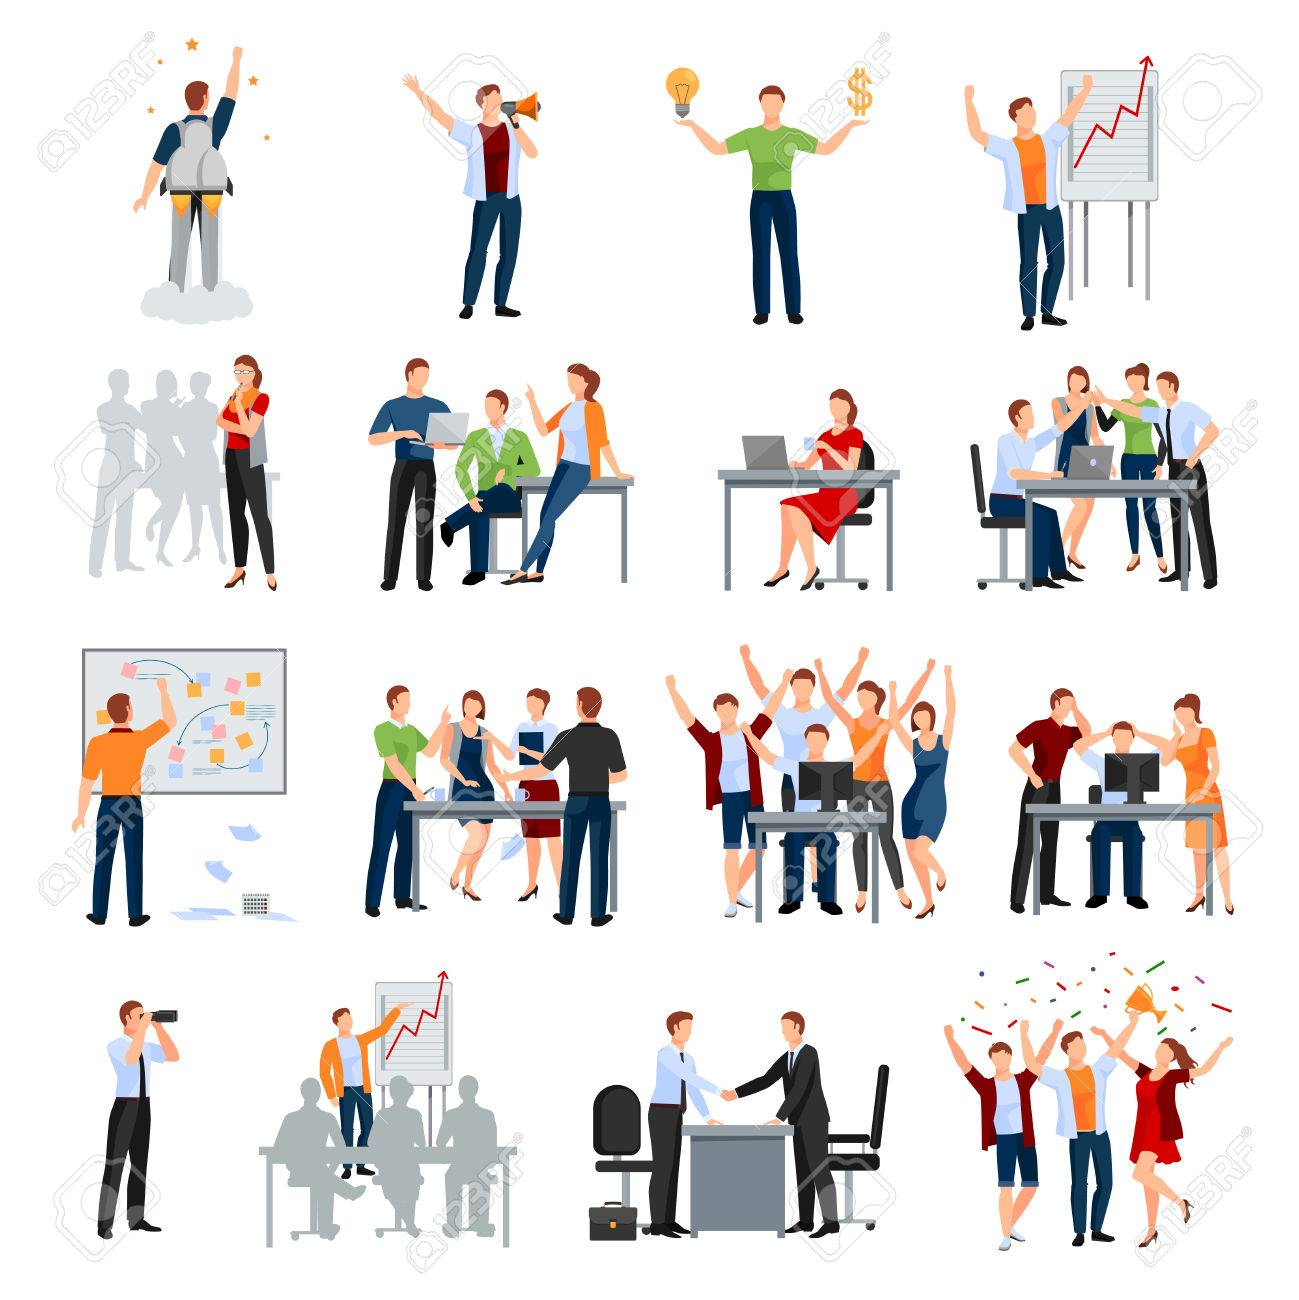 Business startup work moments flat icons collection with meeting planning presentation brainstorming teamwork and success isolated vector illustration - 71436944